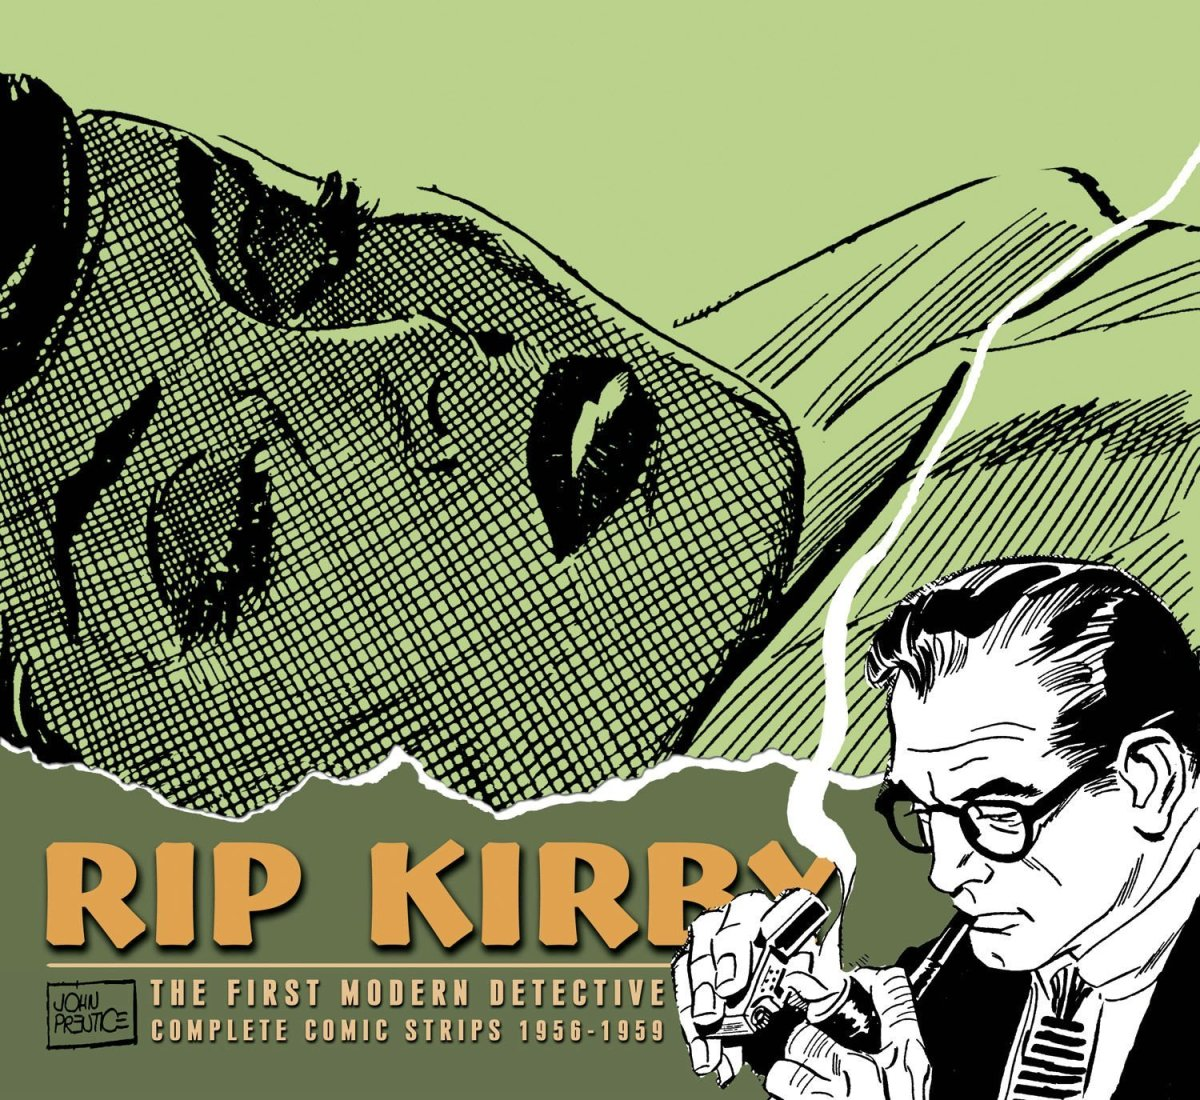 Rip Kirby Vol.5 (Collected Daily Strips from October 22, 1956 to June 6, 1959) IDW